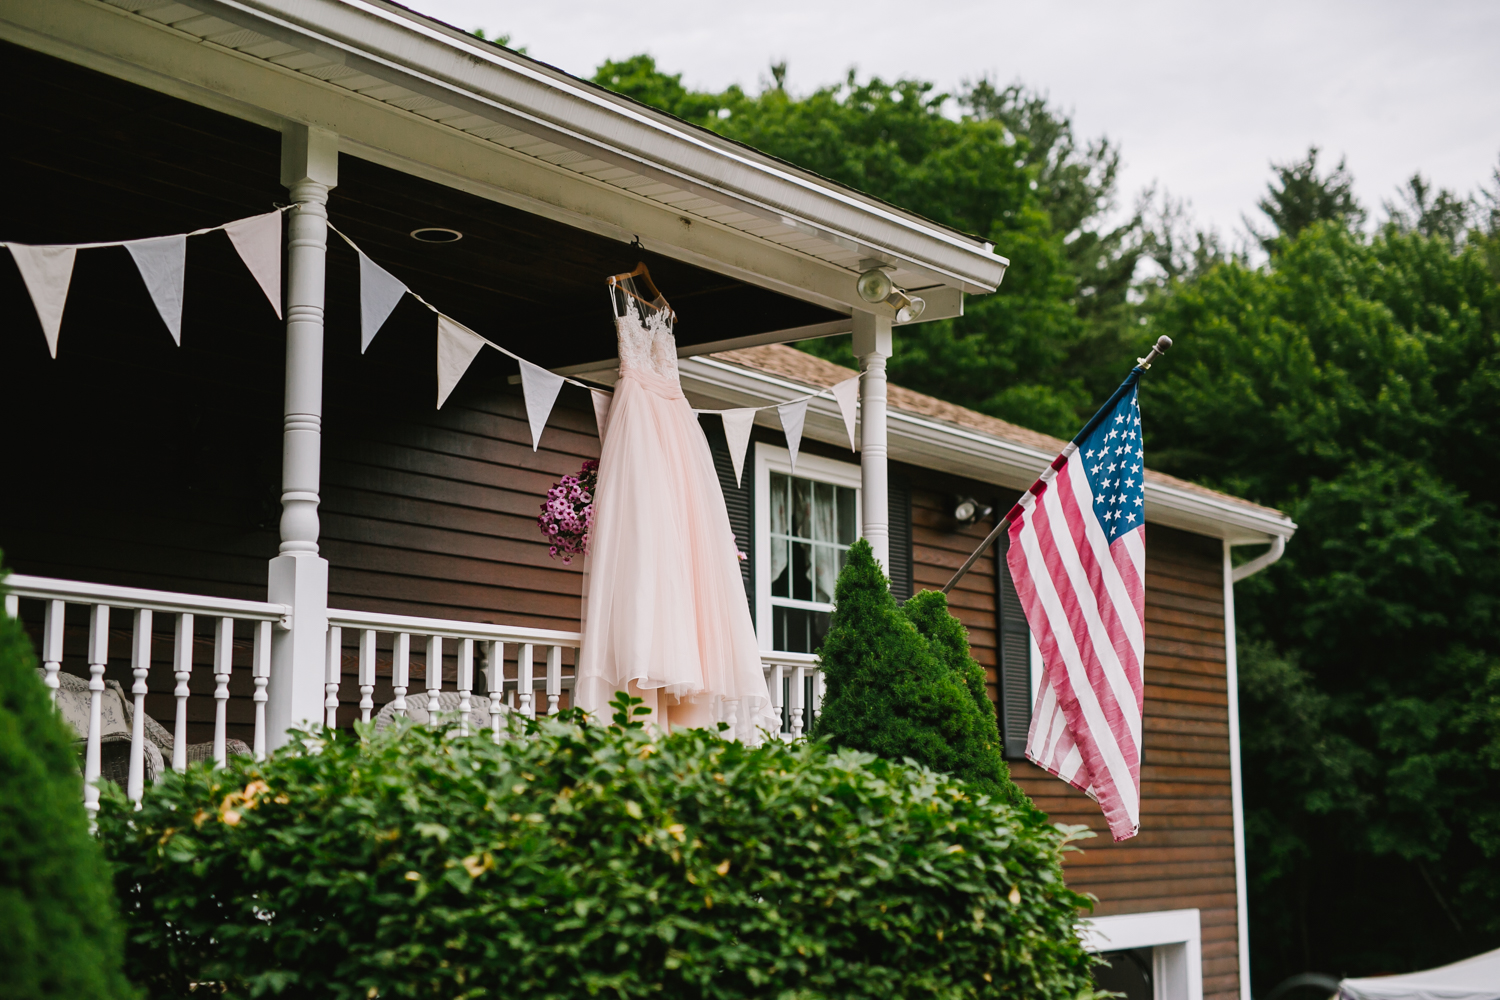 Emily Tebbetts Photography - back yard wedding gif atkinson nh confetti recessional bride and groom pizza truck -1.jpg